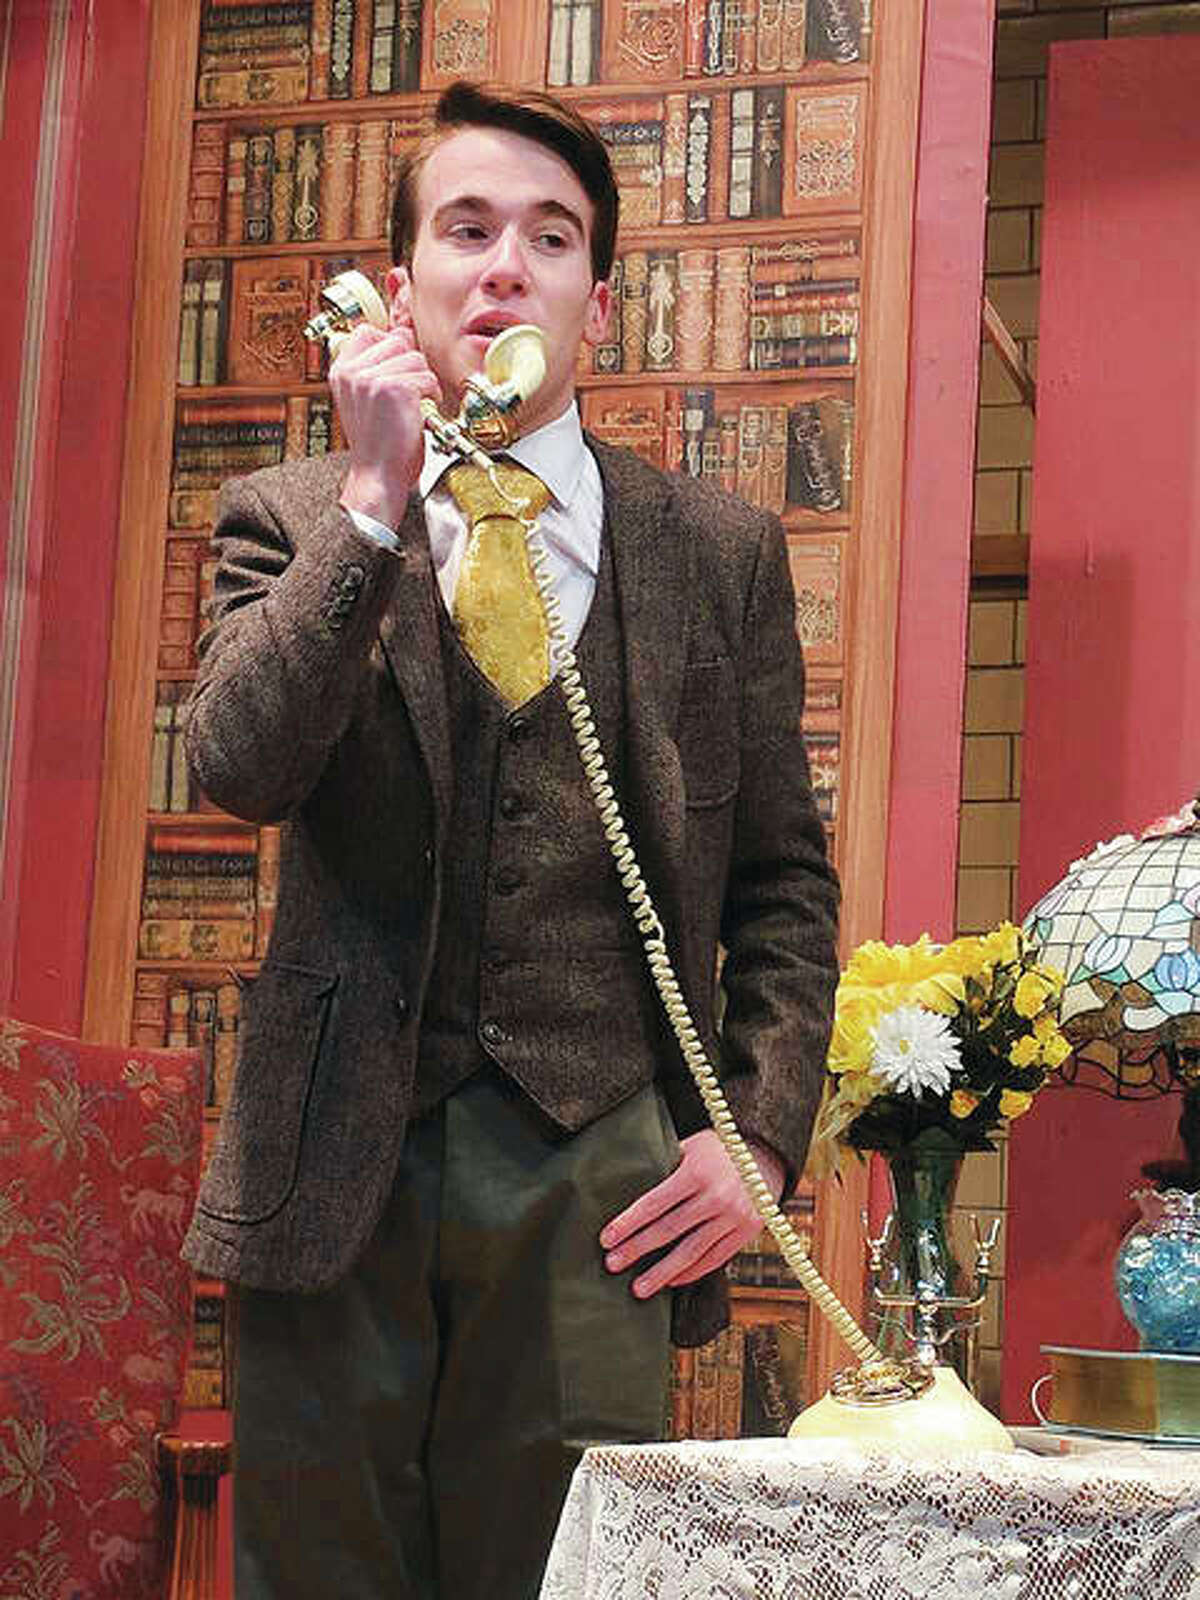 """Elwood P. Dowd (Joseph File) accepts magazines subscriptions from a telephone sales agent and then invites the female agent over to his house to join his sister's society party in MCHS' production of """"Harvey."""""""